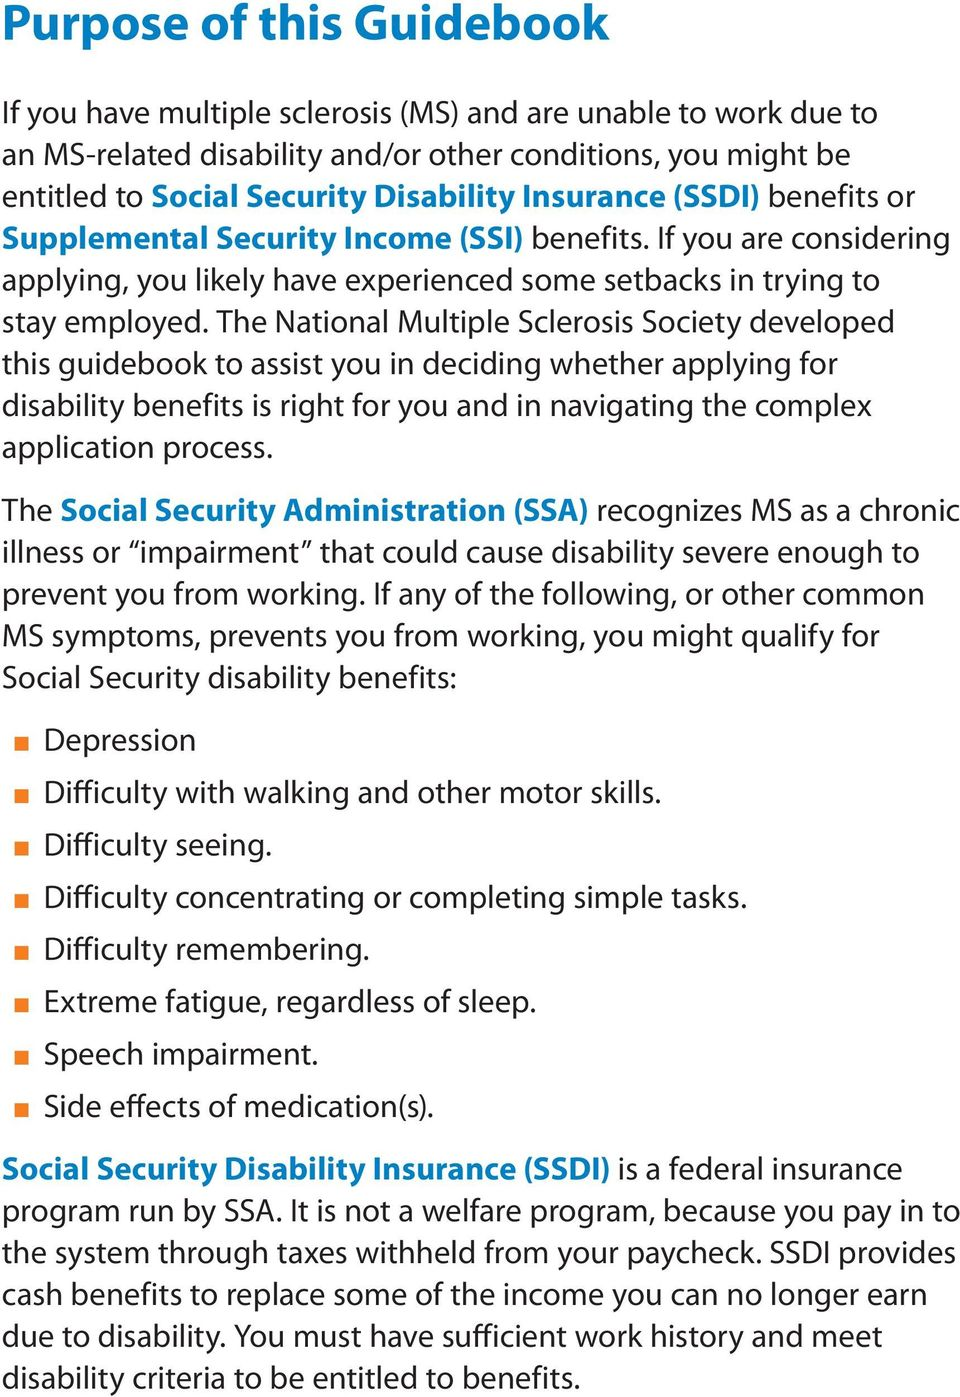 The National Multiple Sclerosis Society developed this guidebook to assist you in deciding whether applying for disability benefits is right for you and in navigating the complex application process.